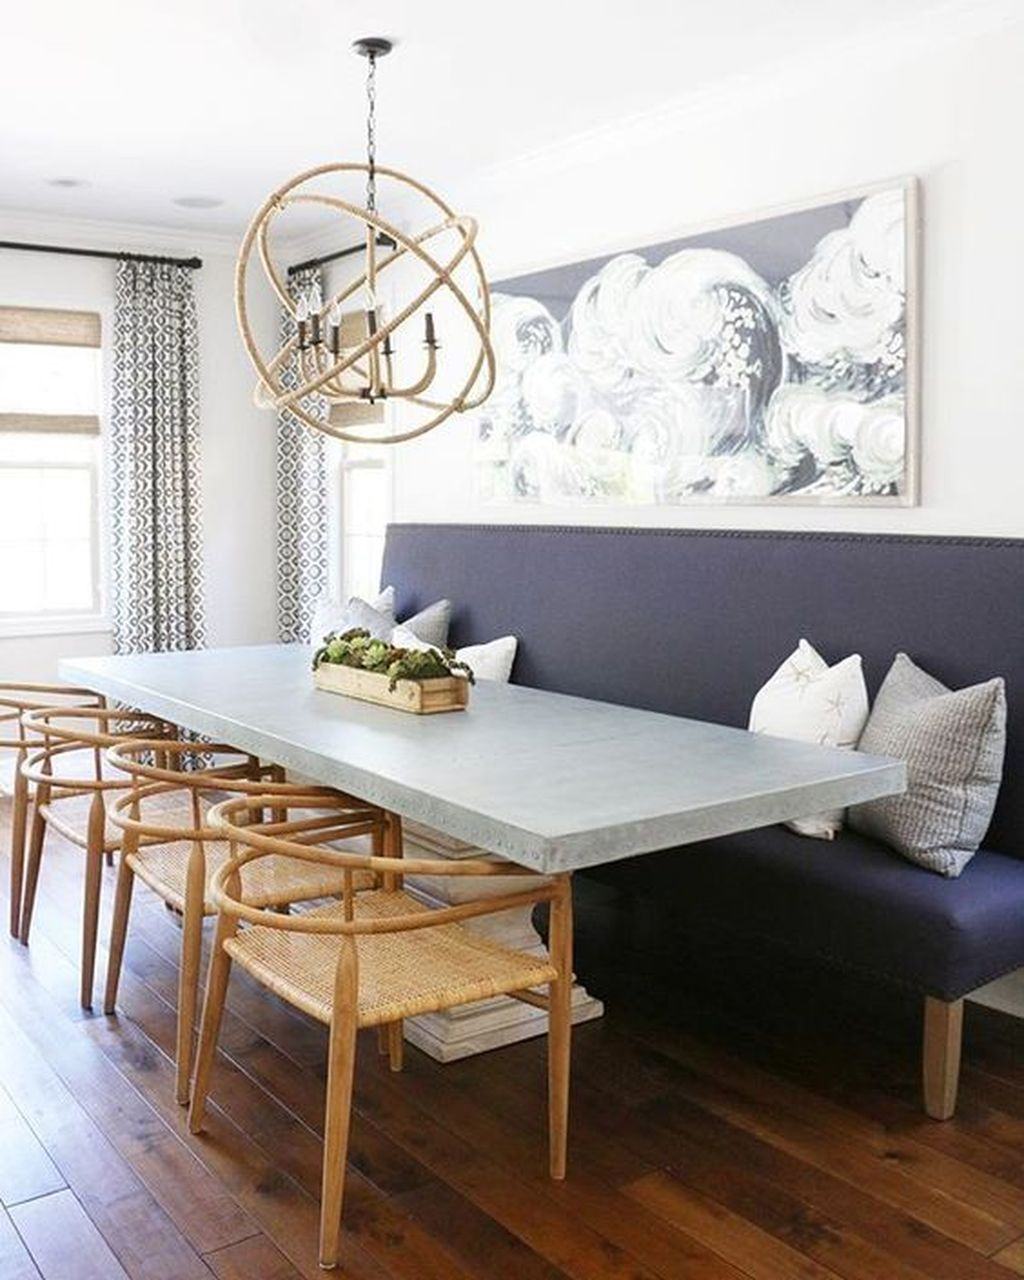 32 Admirable Dining Room Design Ideas Pimphomee Dining Room Design Modern Dining Room Seating Dining Table With Bench